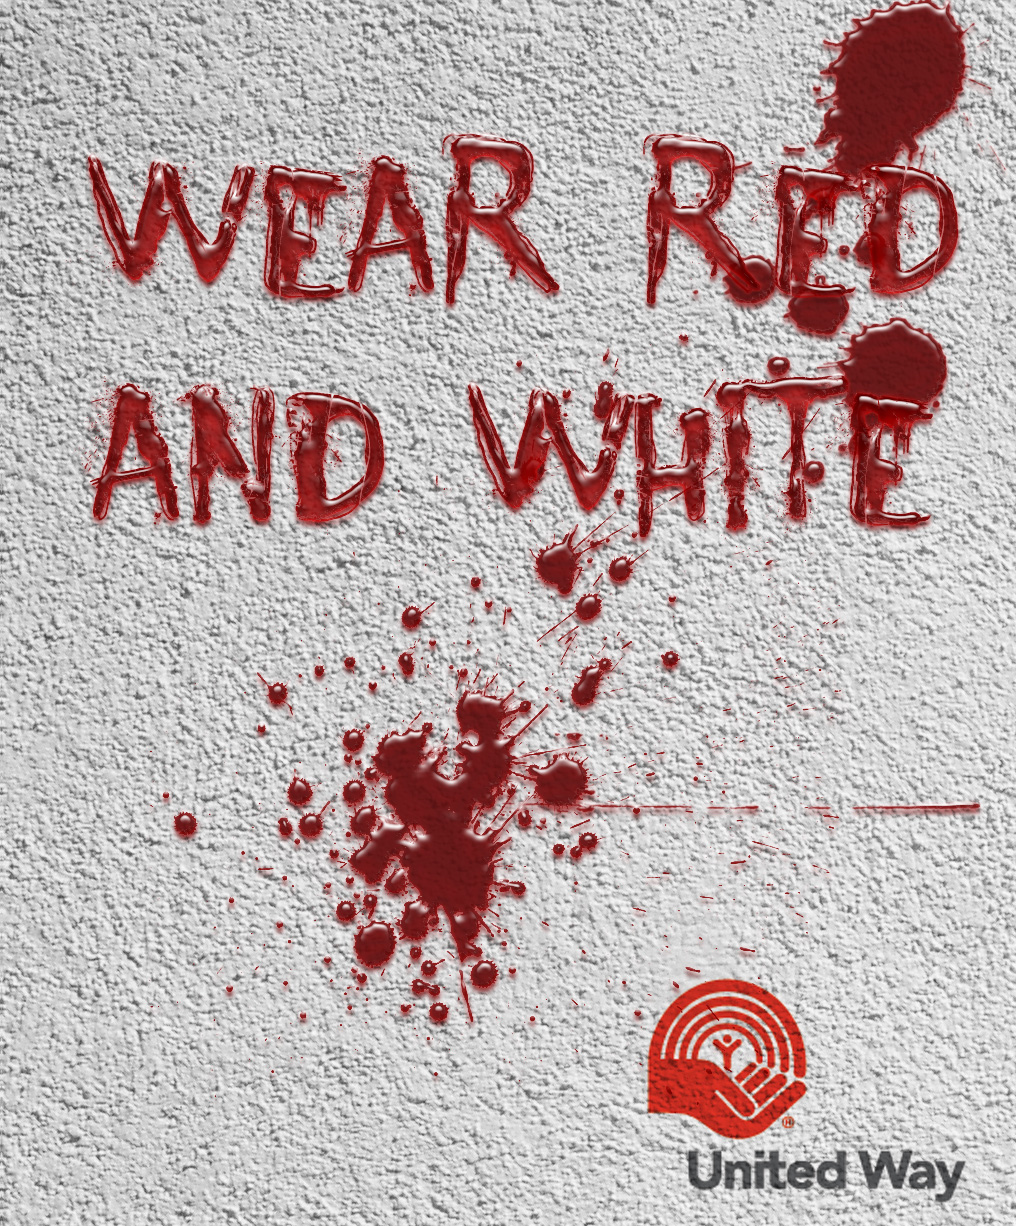 united way, wear red and white campaign drawn on a white wall in blood